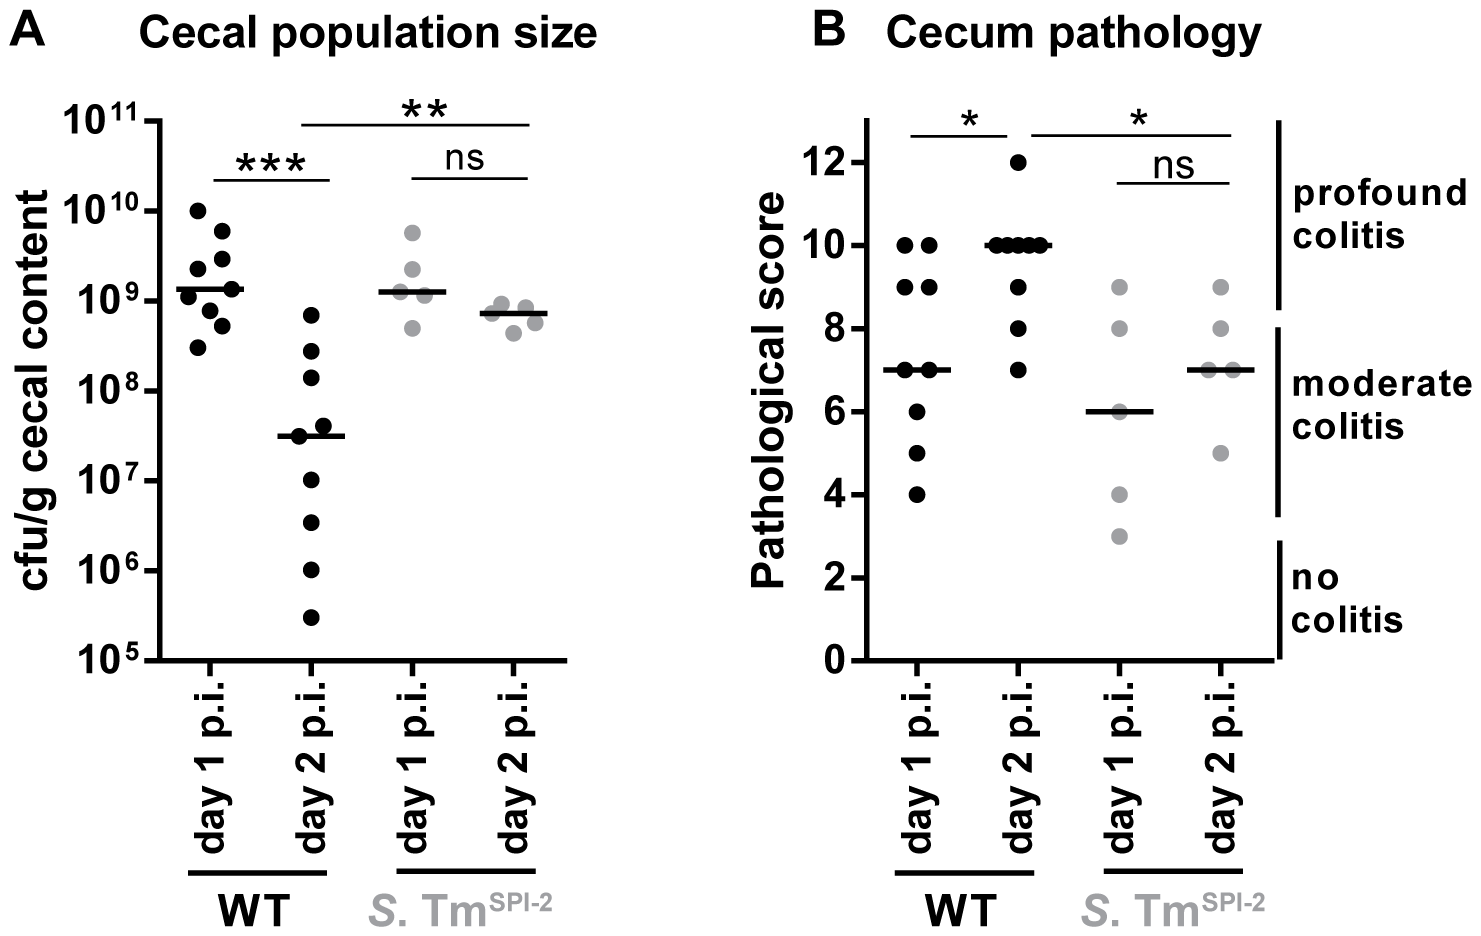 Decrease in cecal population size between day 1 and day 2 p.i. only occurs during <i>S.</i> Tm<sup>WT</sup> induced inflammation, but not during inflammation in a SPI-2 deficient background.